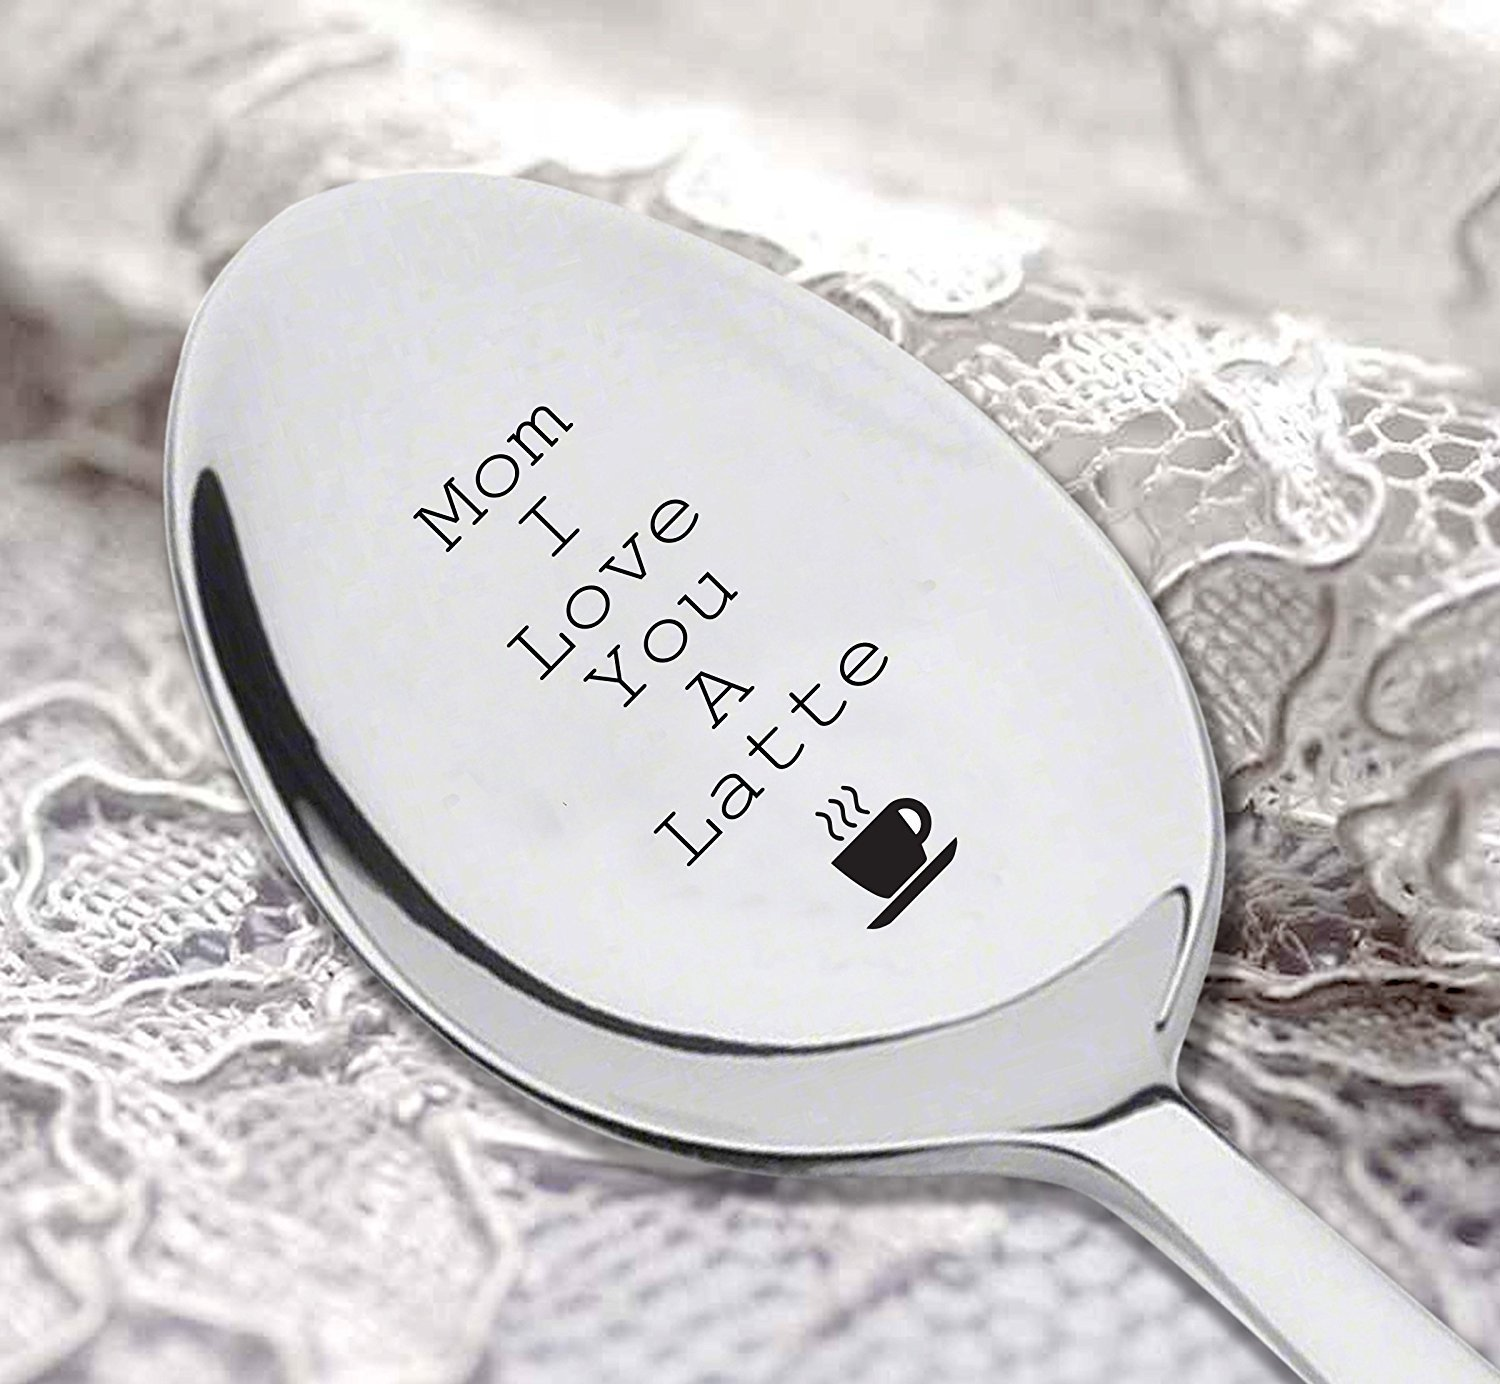 Engraved Spoon Stainless Steel Silverware Flatware Unique Birthday Easter Basket Gifts For Boy Girl Mom Dad Kids My Peanut Butter Spoon With Two Little Heart